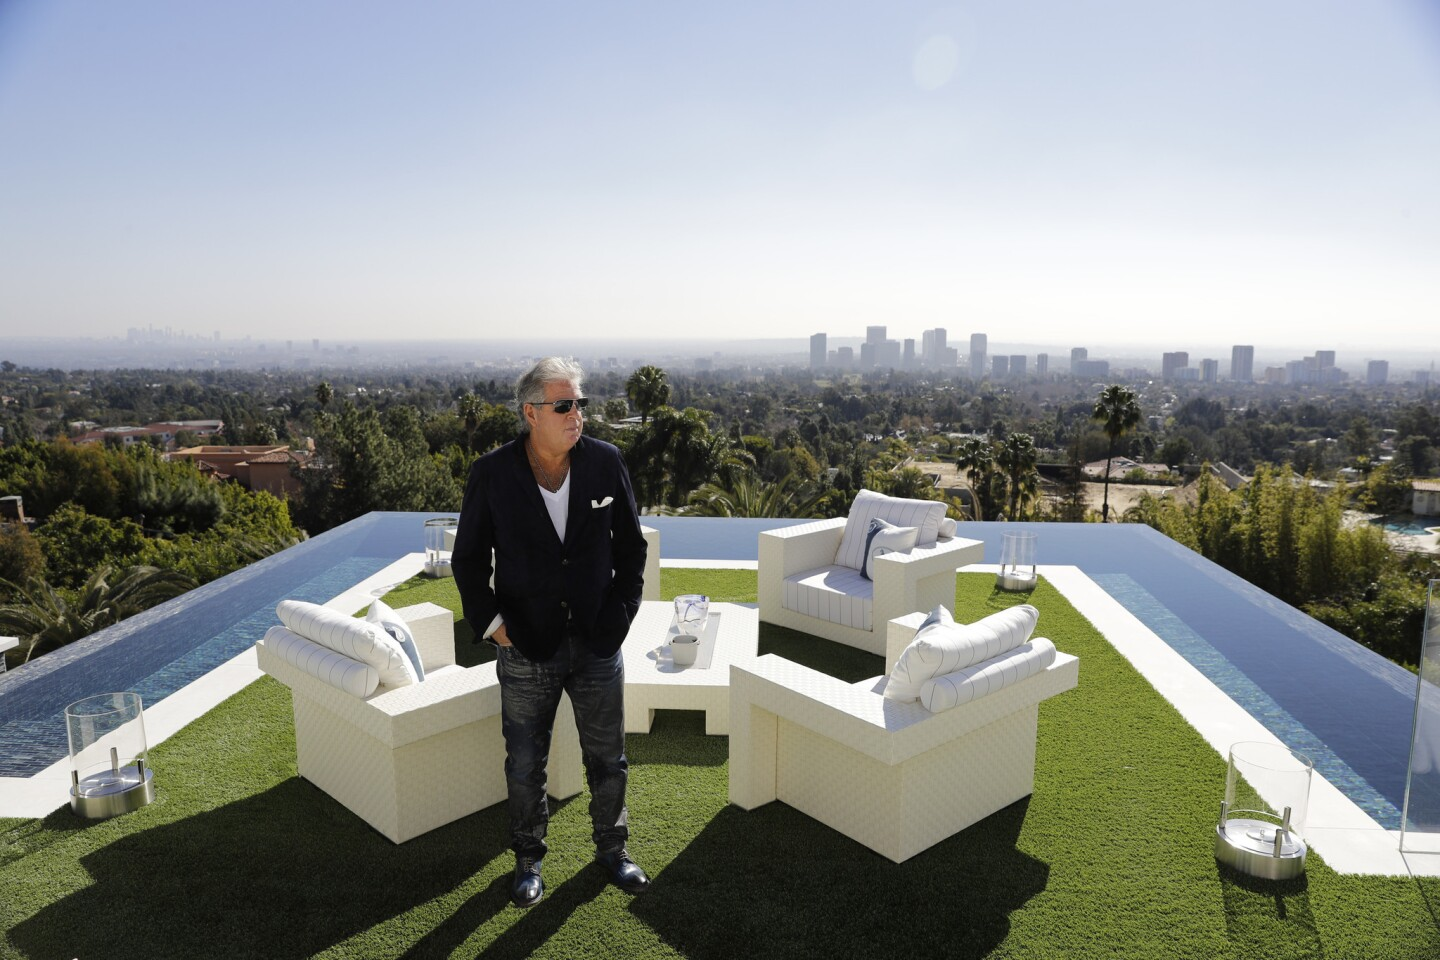 In this Thursday, Jan. 26, 2017, photo, developer Bruce Makowsky poses for a photo on the balcony off the master bedroom of a $250 million mansion he built in the Bel-Air area of Los Angeles. The mansion, the most expensive home listed in the U.S., includes 12 bedroom suites, 21 bathrooms, five bars, three gourmet kitchens, a spa and an 85-foot infinity swimming pool with stunning views of Los Angeles.